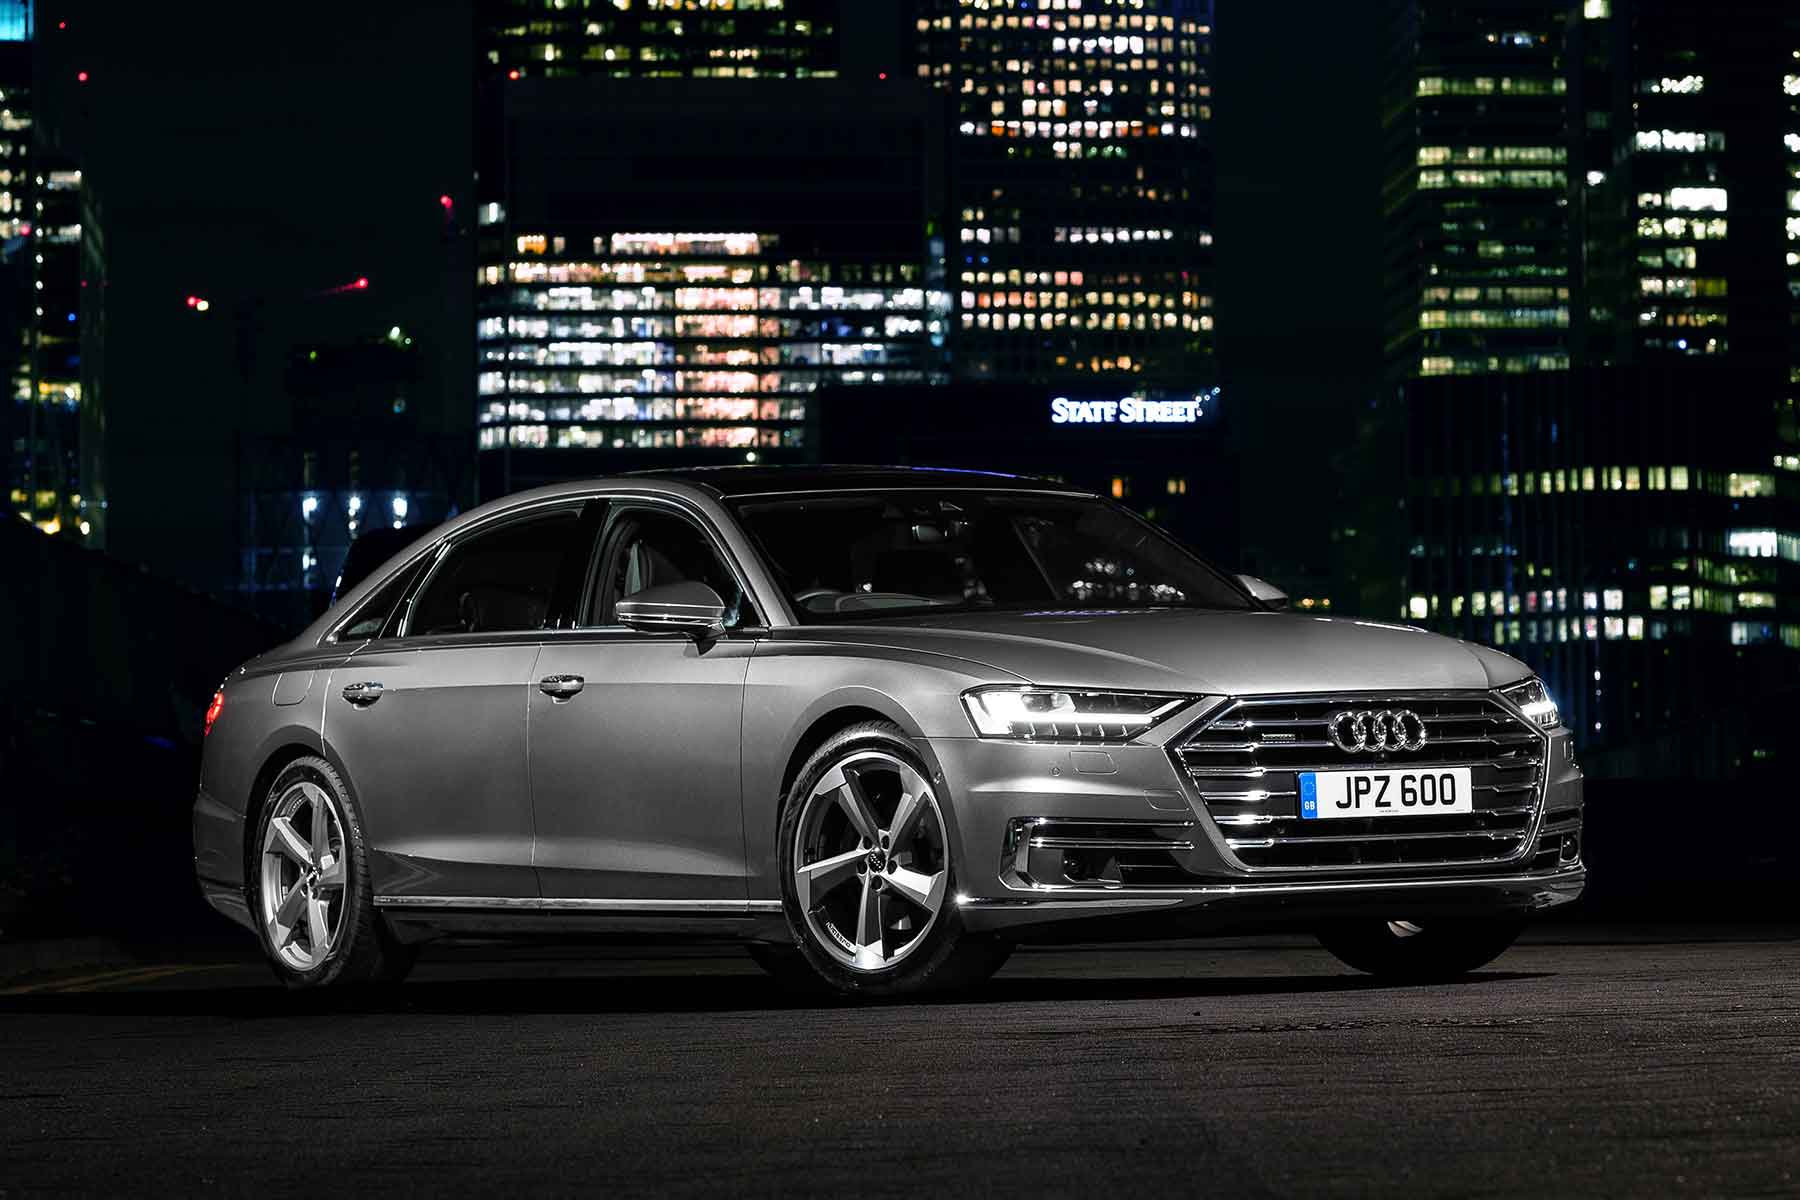 2019 Luxury Car Of The Year: World Car Of The Year 2019 Contenders Revealed